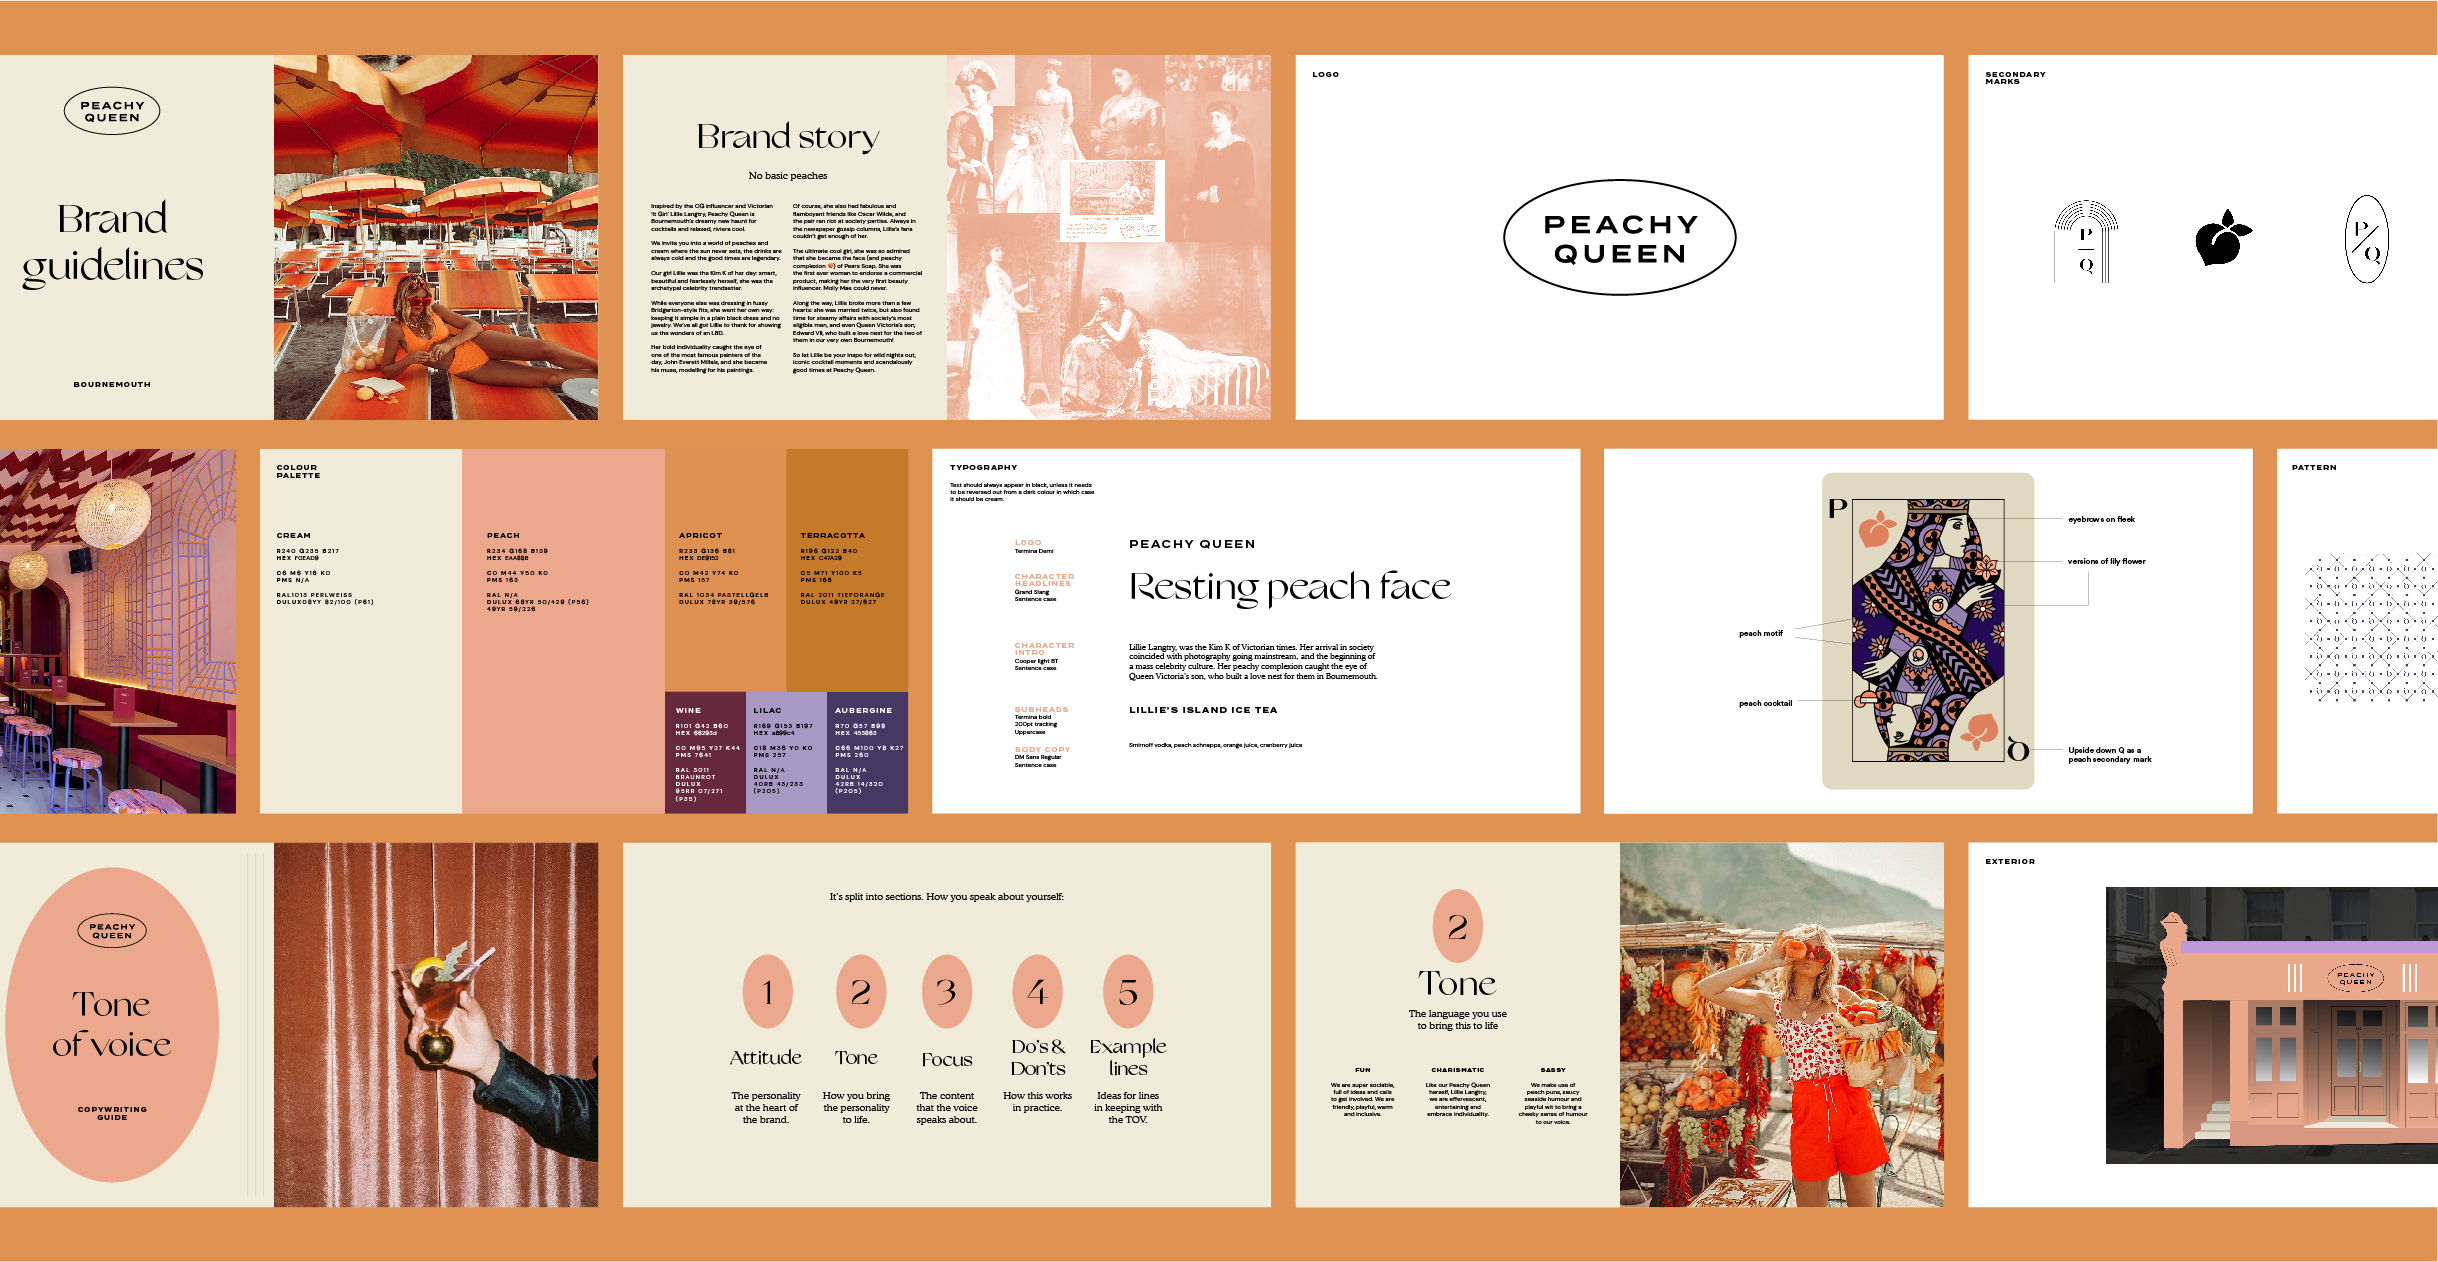 Peachy Queen brand guidelines